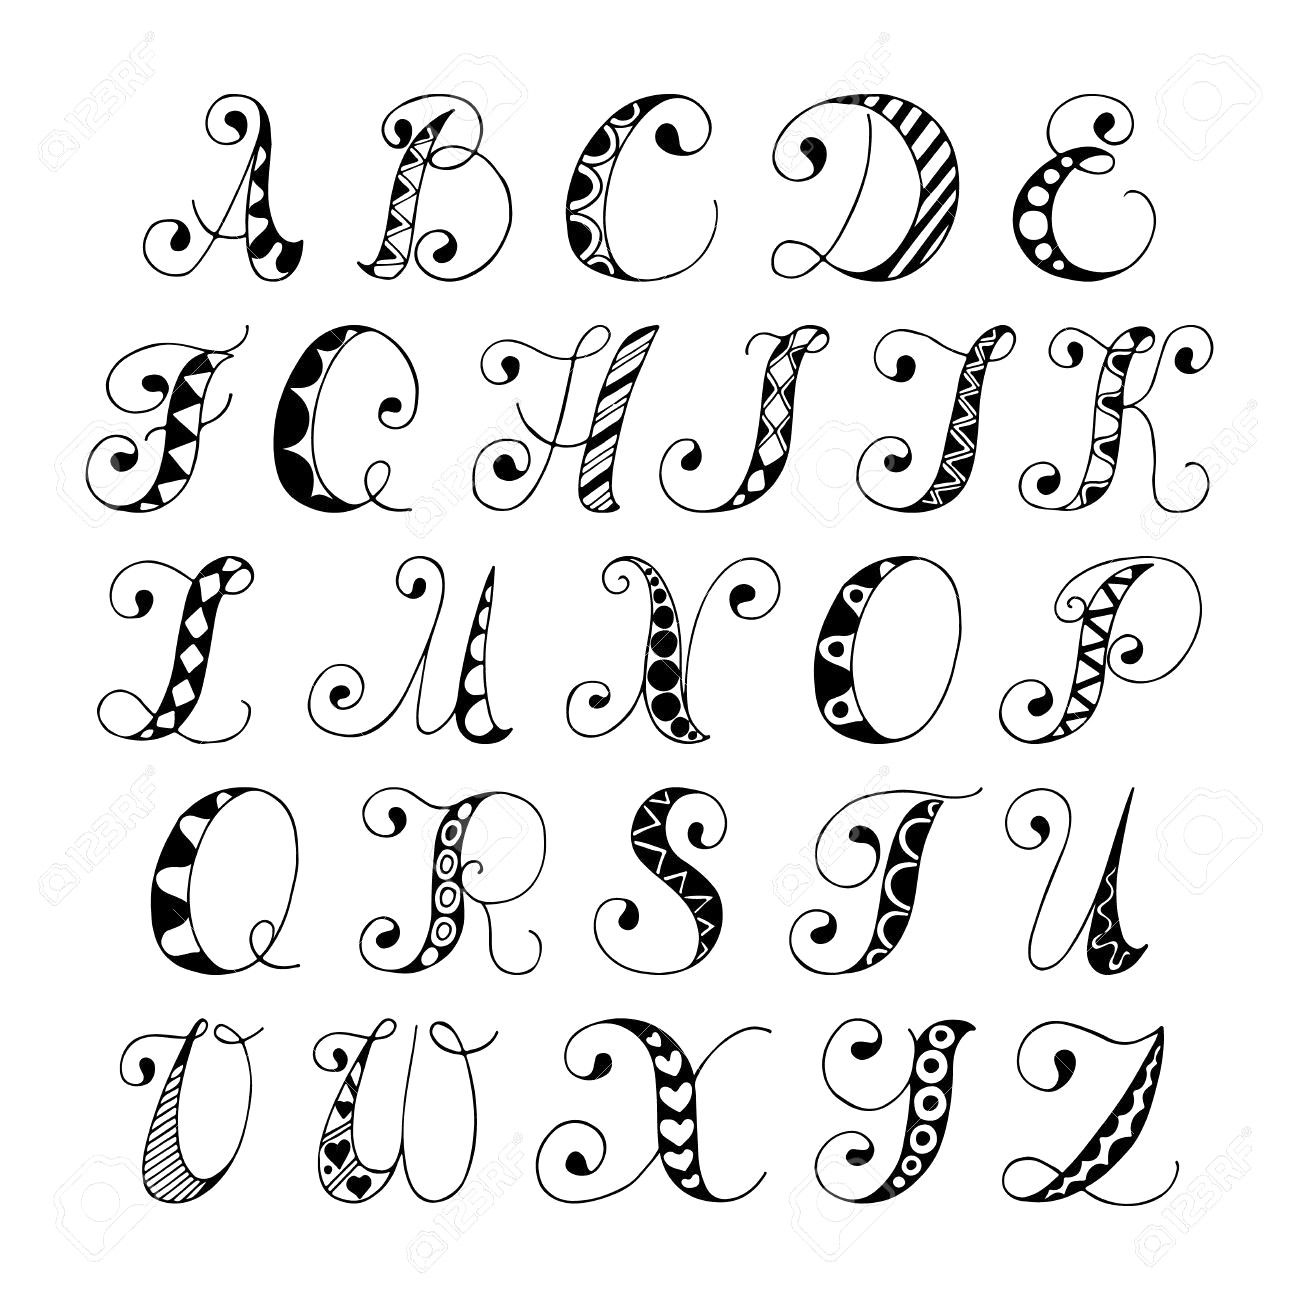 16 Cool Easy Fonts To Draw By Hand Alphabet Doodle